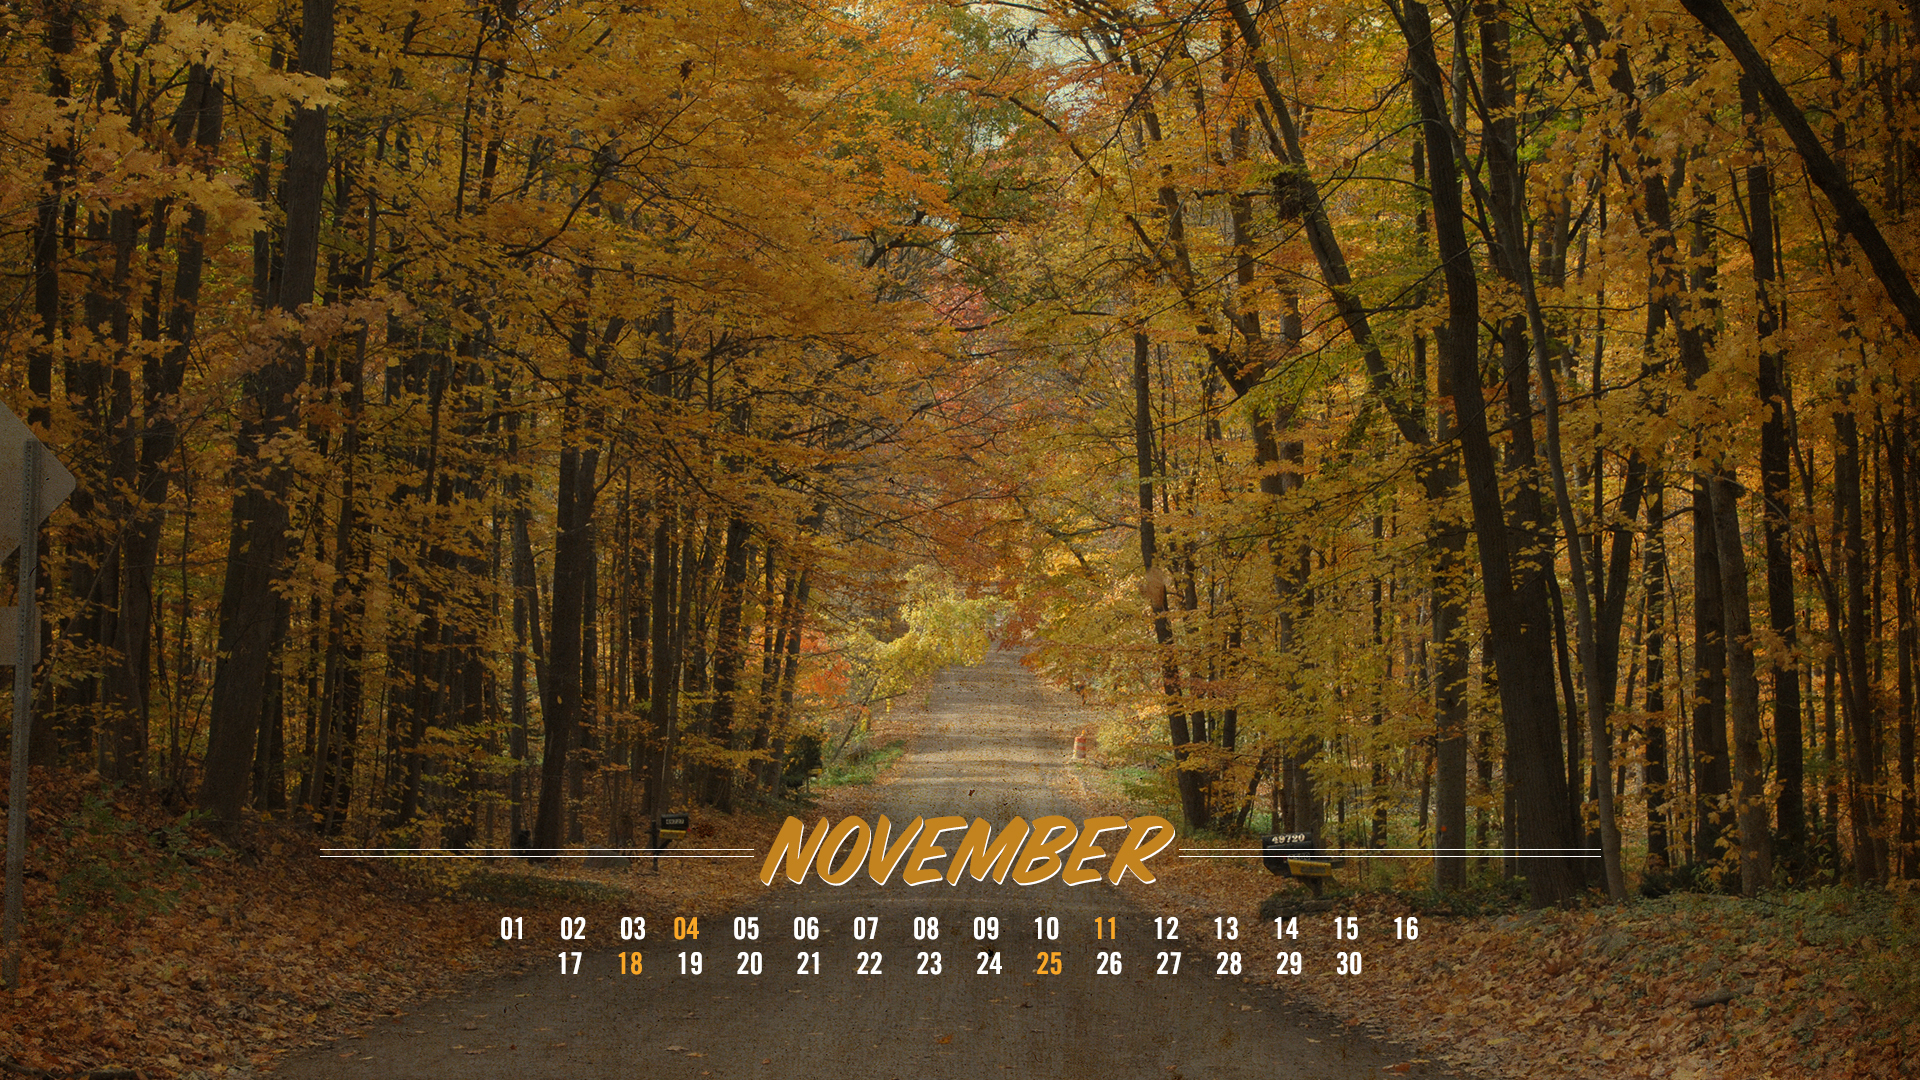 november wallpapers hd free download